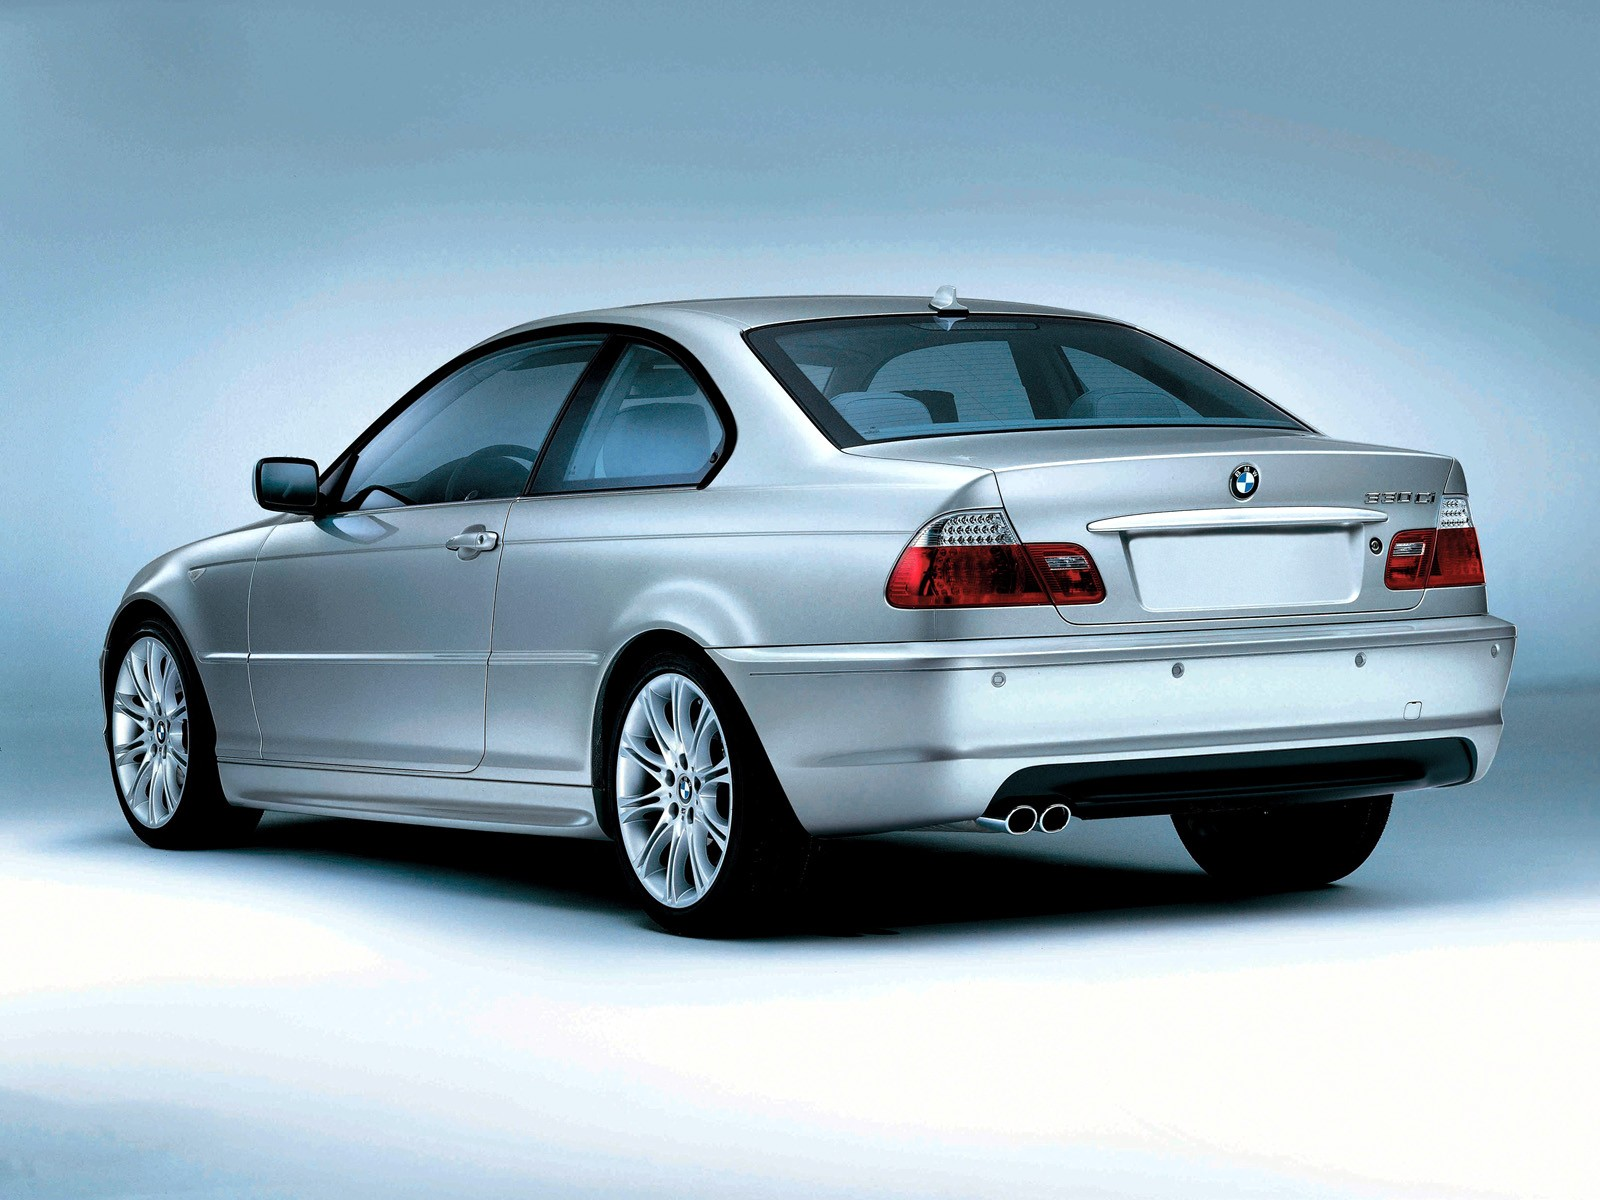 BMW 3 Series Coupe (E46) specs - 2003, 2004, 2005, 2006 - autoevolution